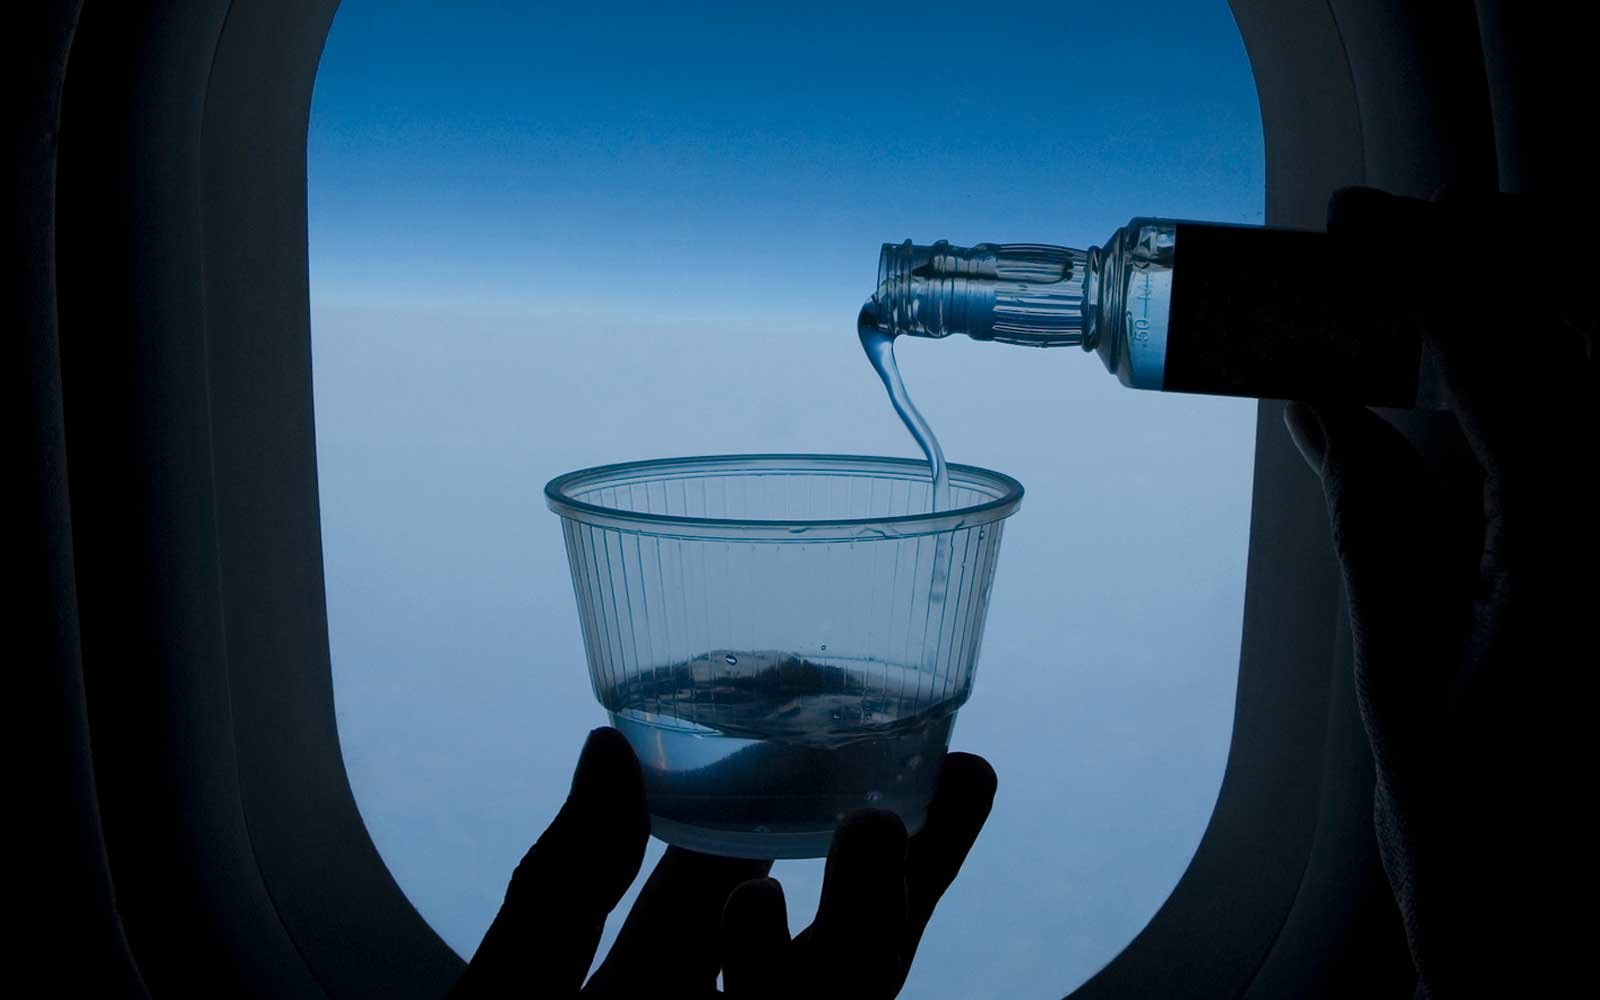 Alcoholic beverage on plane